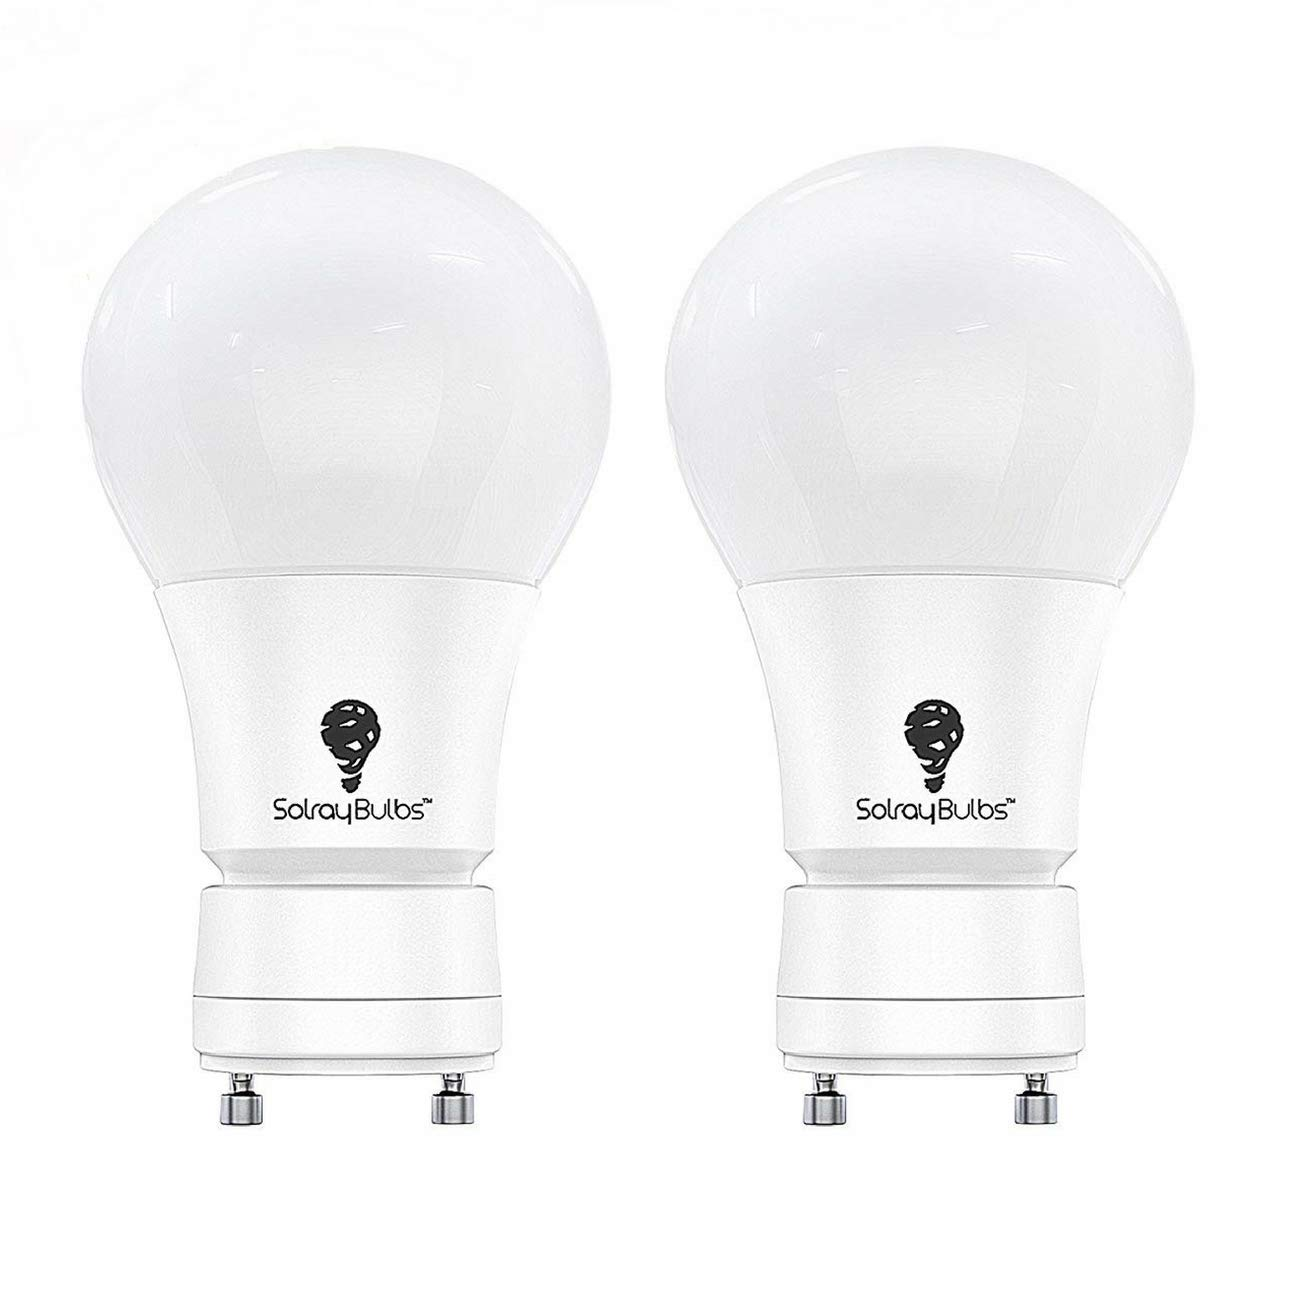 Solray LED GU24 Base Dimmable A19 Shape, 9W (60-Watt Equivalent) Fully Dimmable 4000K (Cool White/Daylight ) UL-Listed 2 Pack